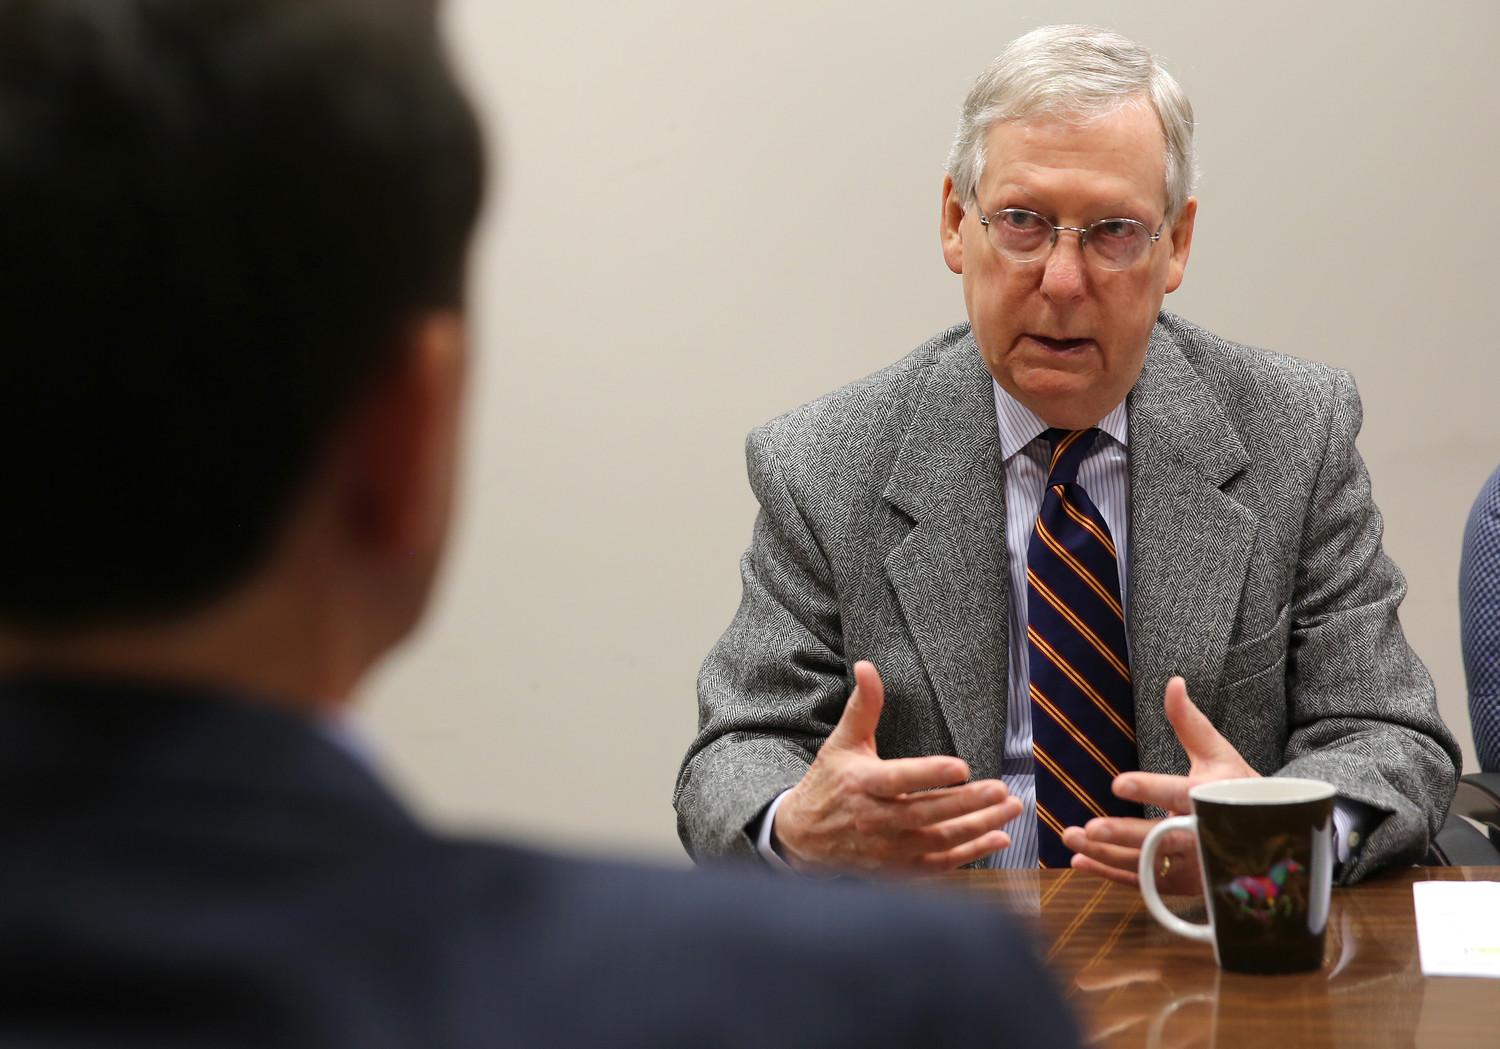 Senate Majority Leader Mitch McConnell talks with members of the Kentucky Today editorial board in Louisville, Ky., on Tuesday April 3, 2018. He said the GOP is facing contrary political winds in this year's elections. (Kentucky Today/Robin Cornetet)